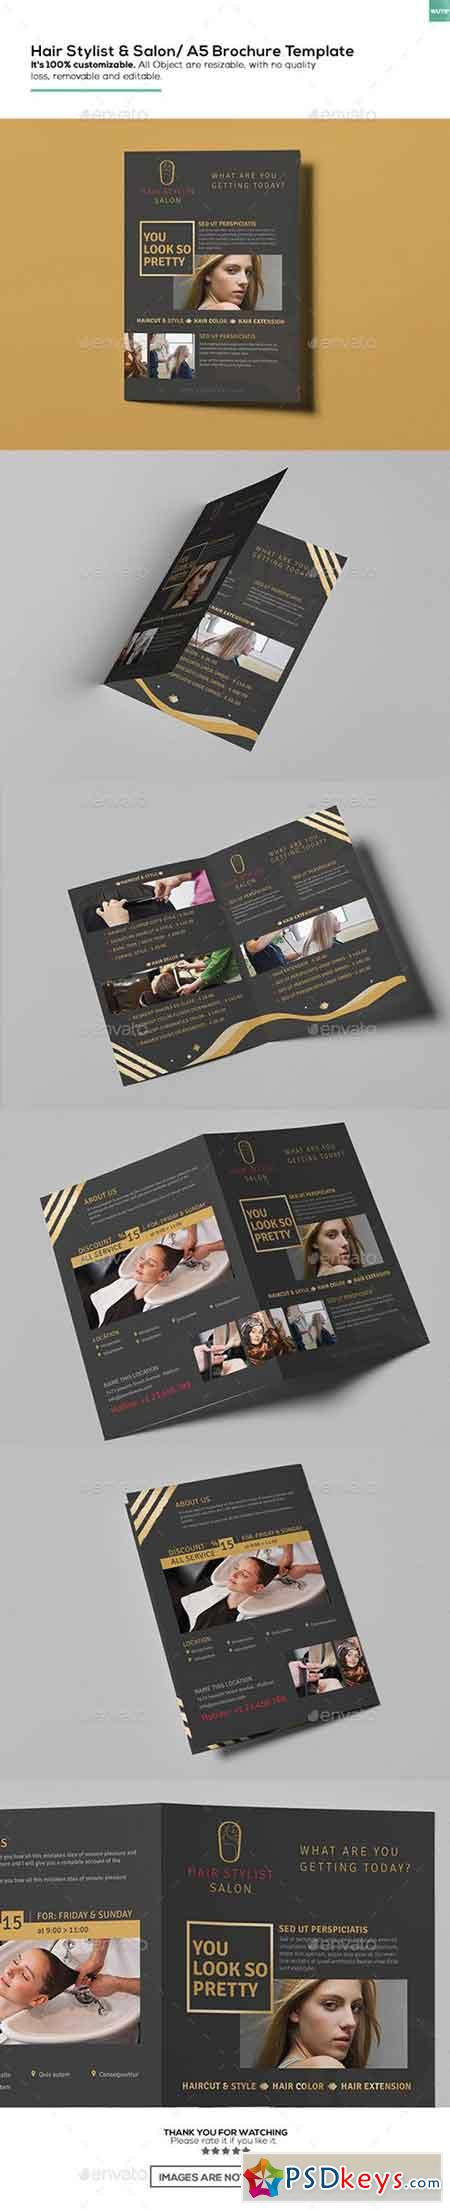 Hair Stylist & Salon A5 Brochure Template 16162465